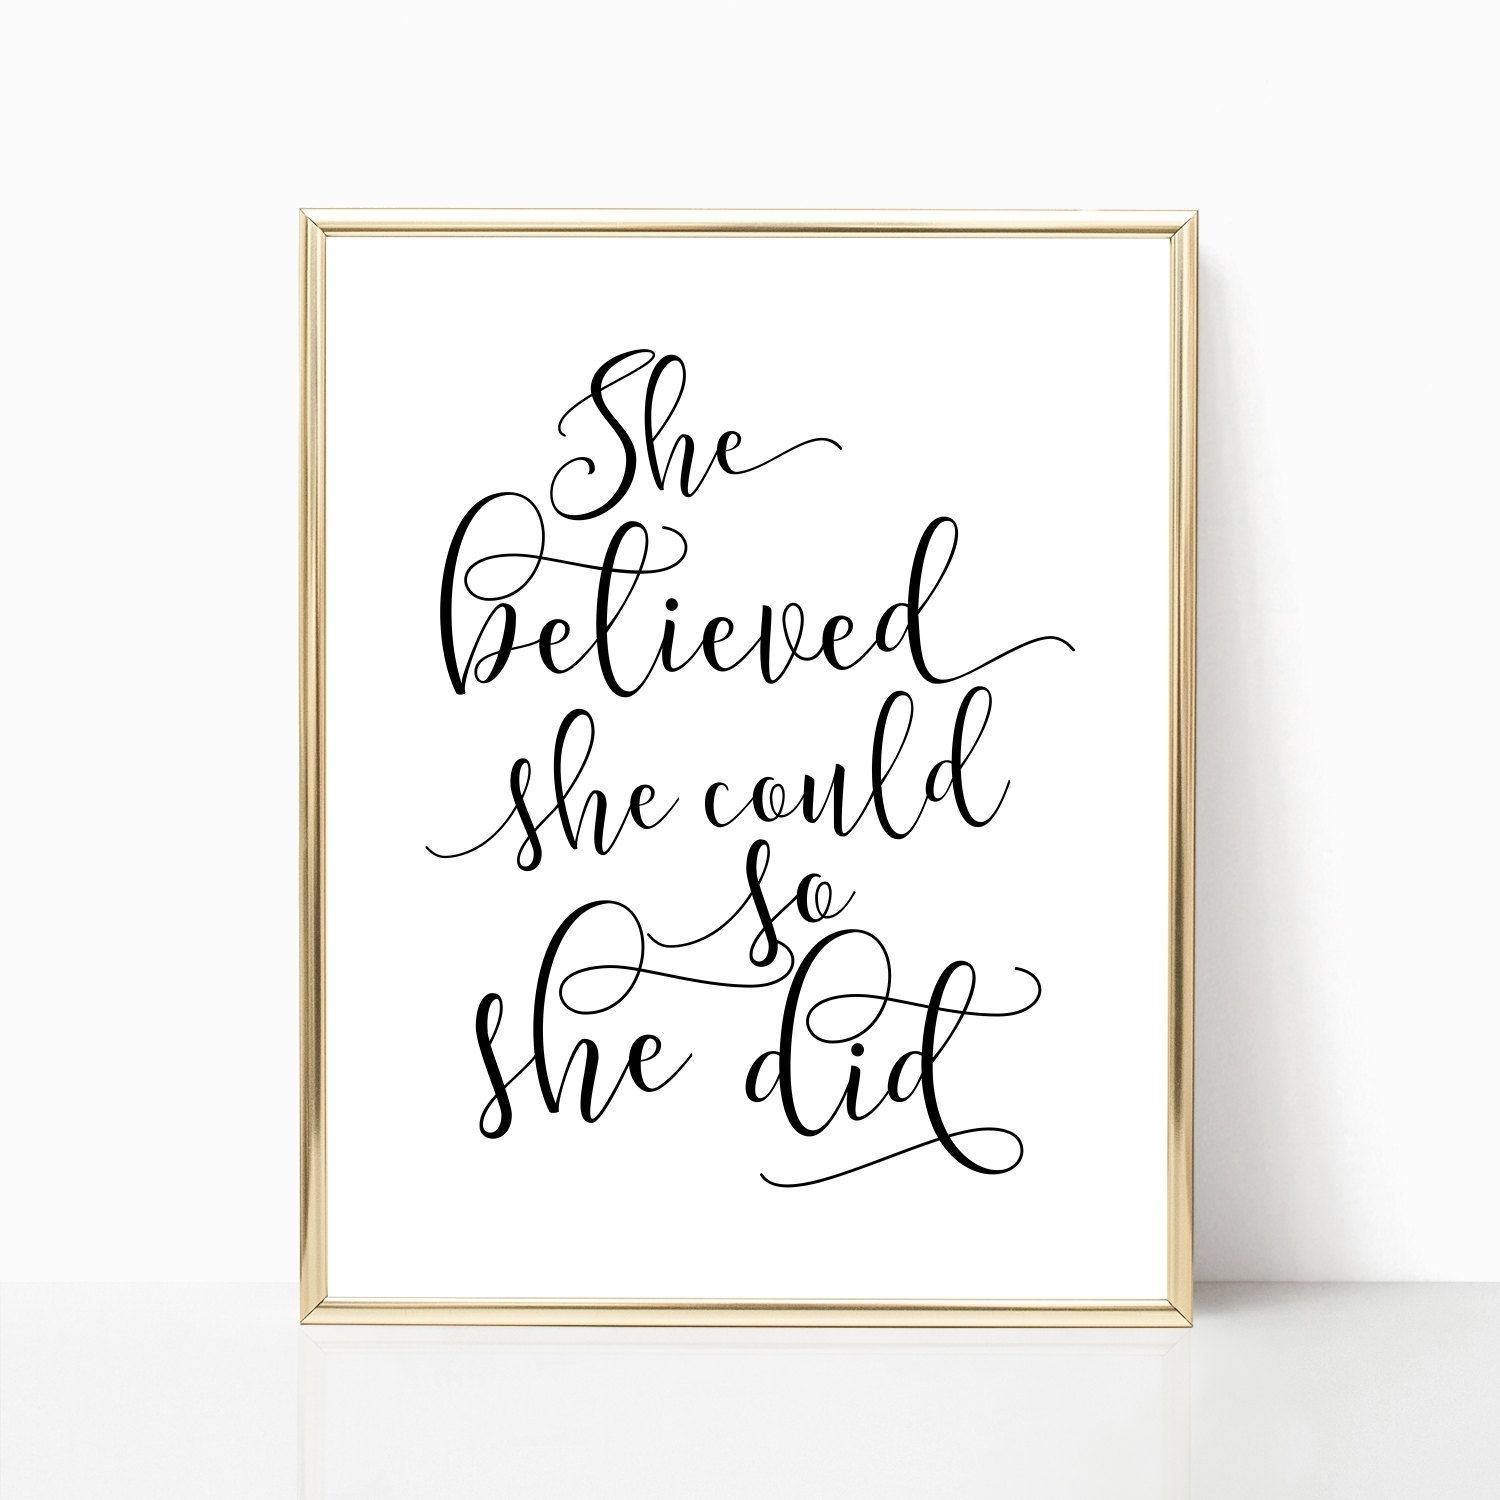 She Believed She Could So She Did Printable Art Girls Room Decor Regarding Newest She Believed She Could So She Did Wall Art (Gallery 20 of 20)